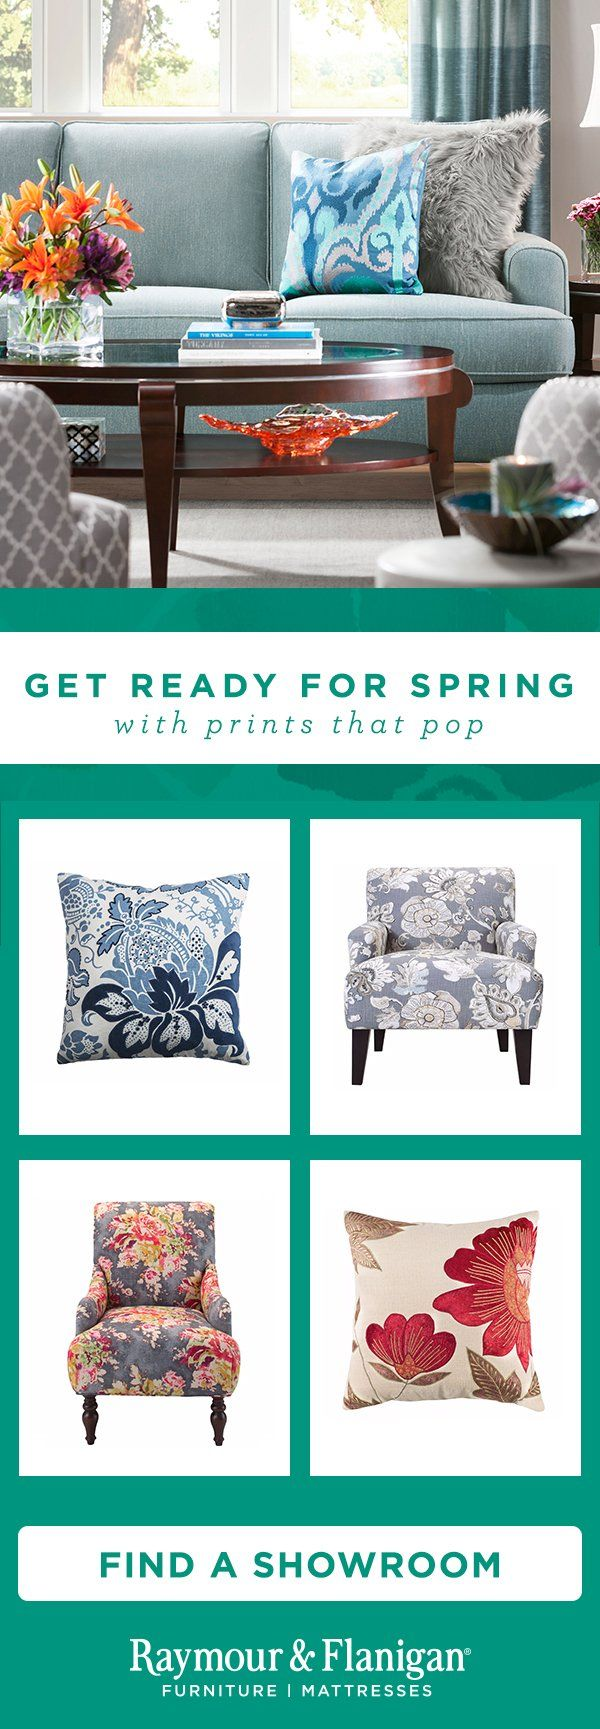 Get Ready For Spring With Prints That Pop Furniture